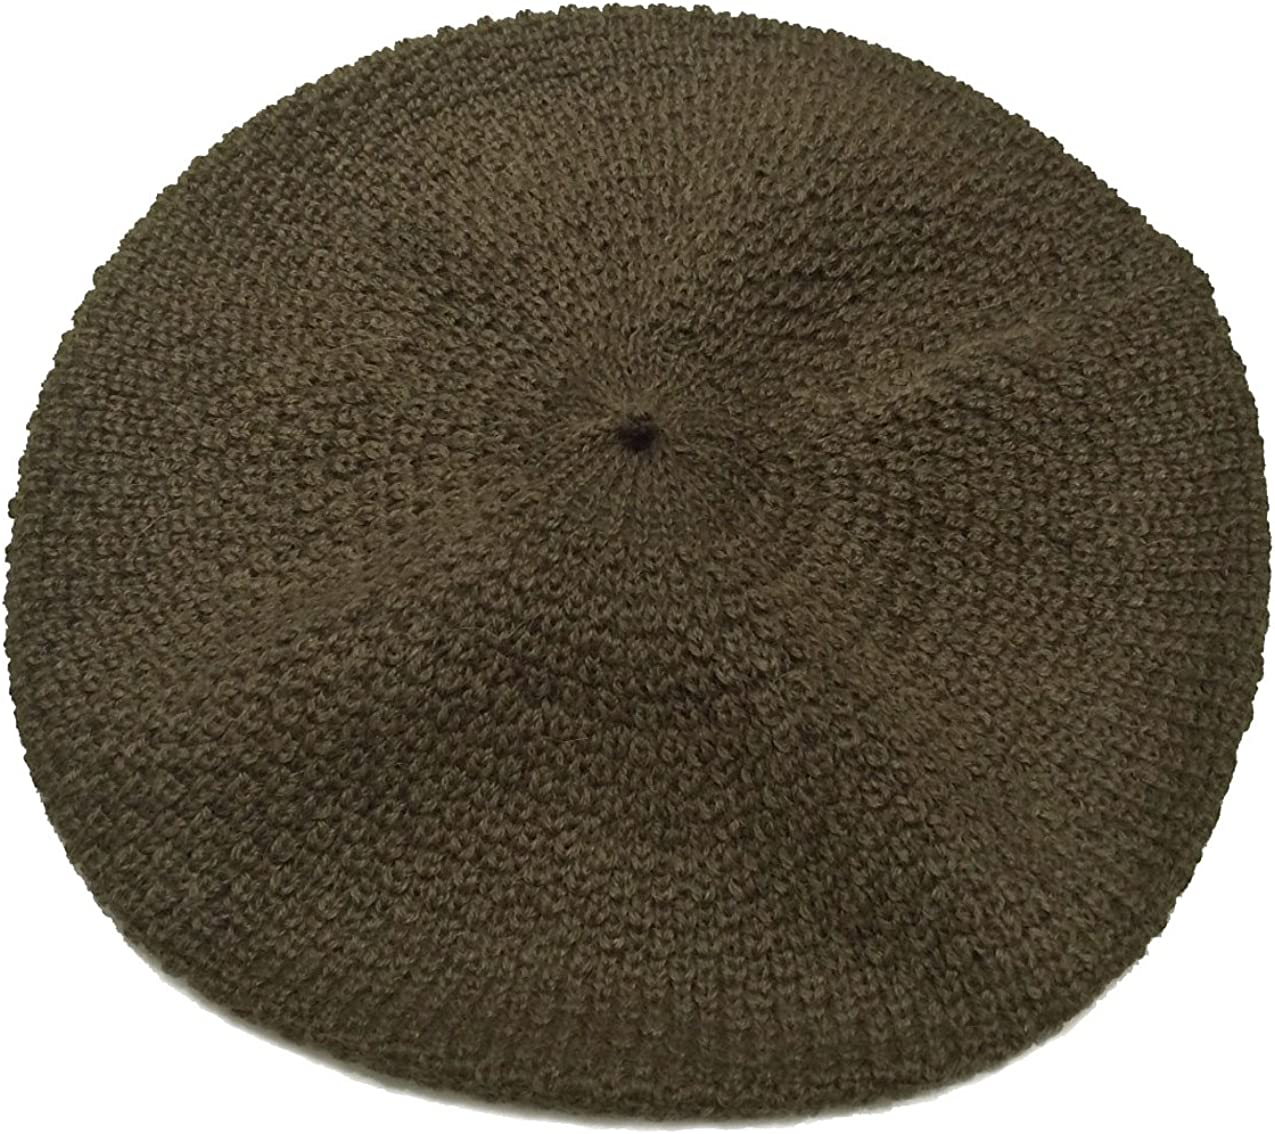 100% Pure Alpaca Knit Beret - Soft Slouchy Style Tam for Women